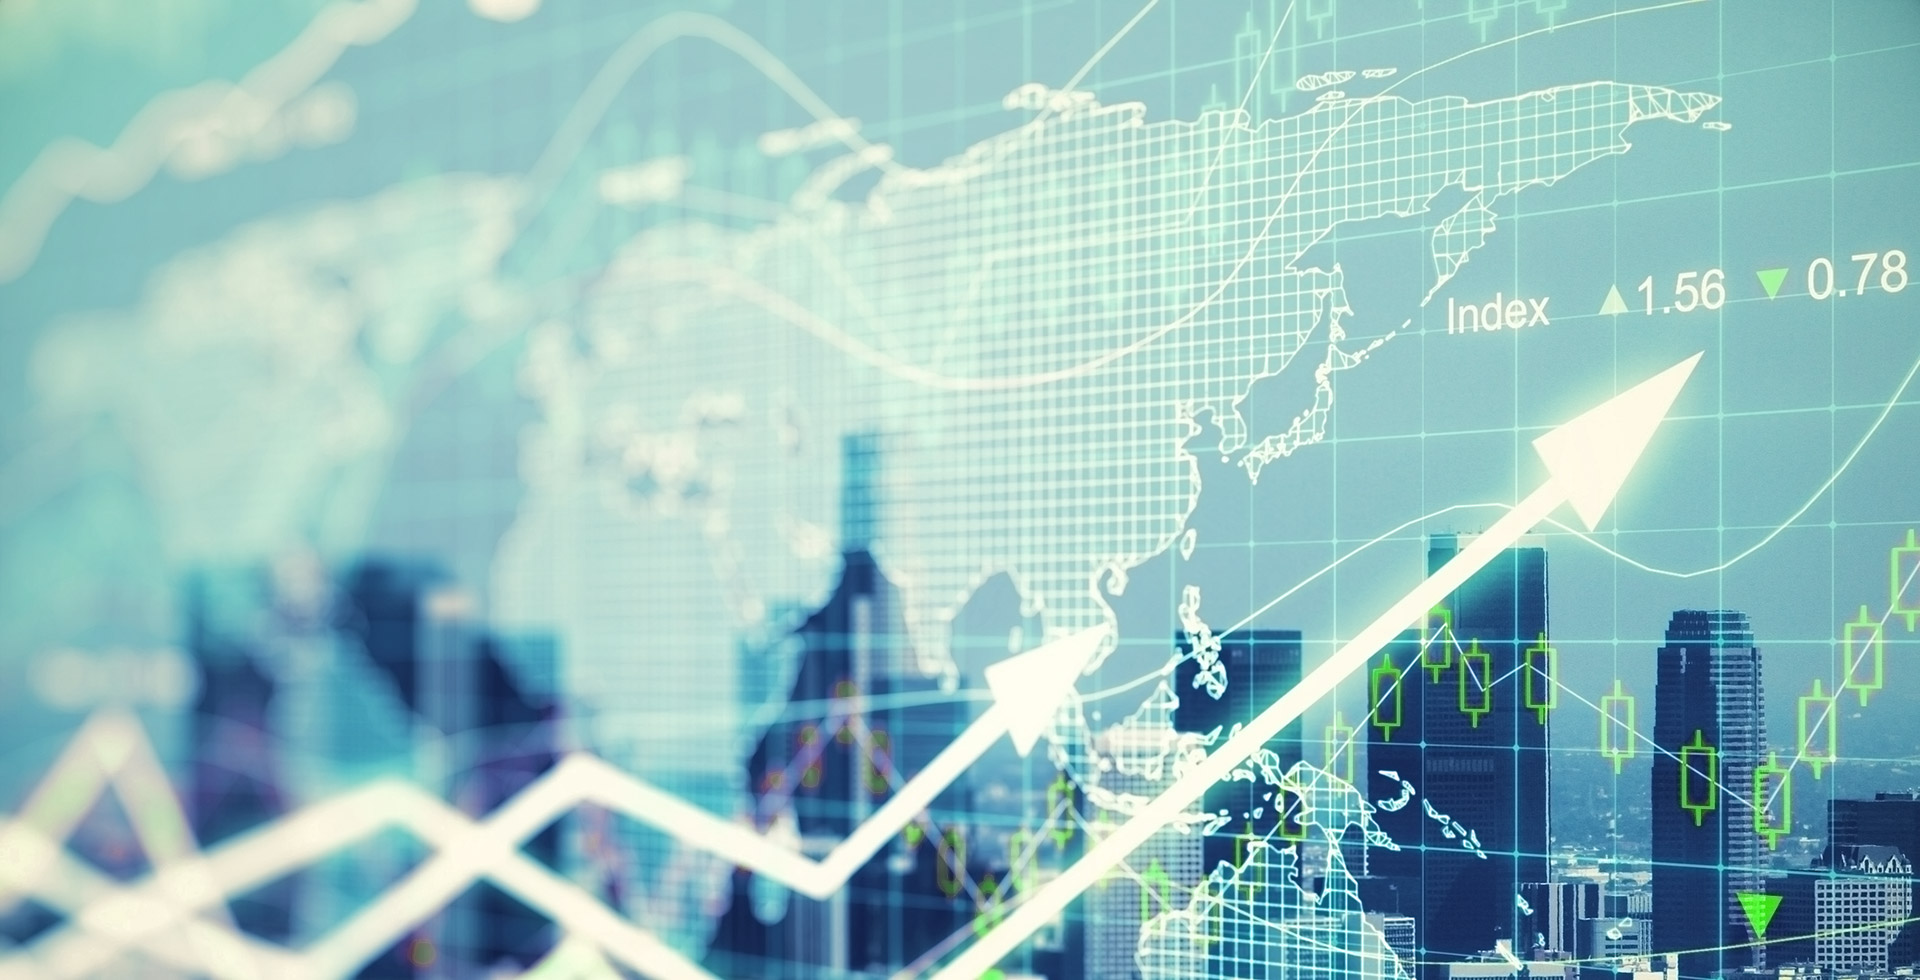 Using Emerging Market Small Cap Equities To Navigate The New Era Of Slowing Global Trade